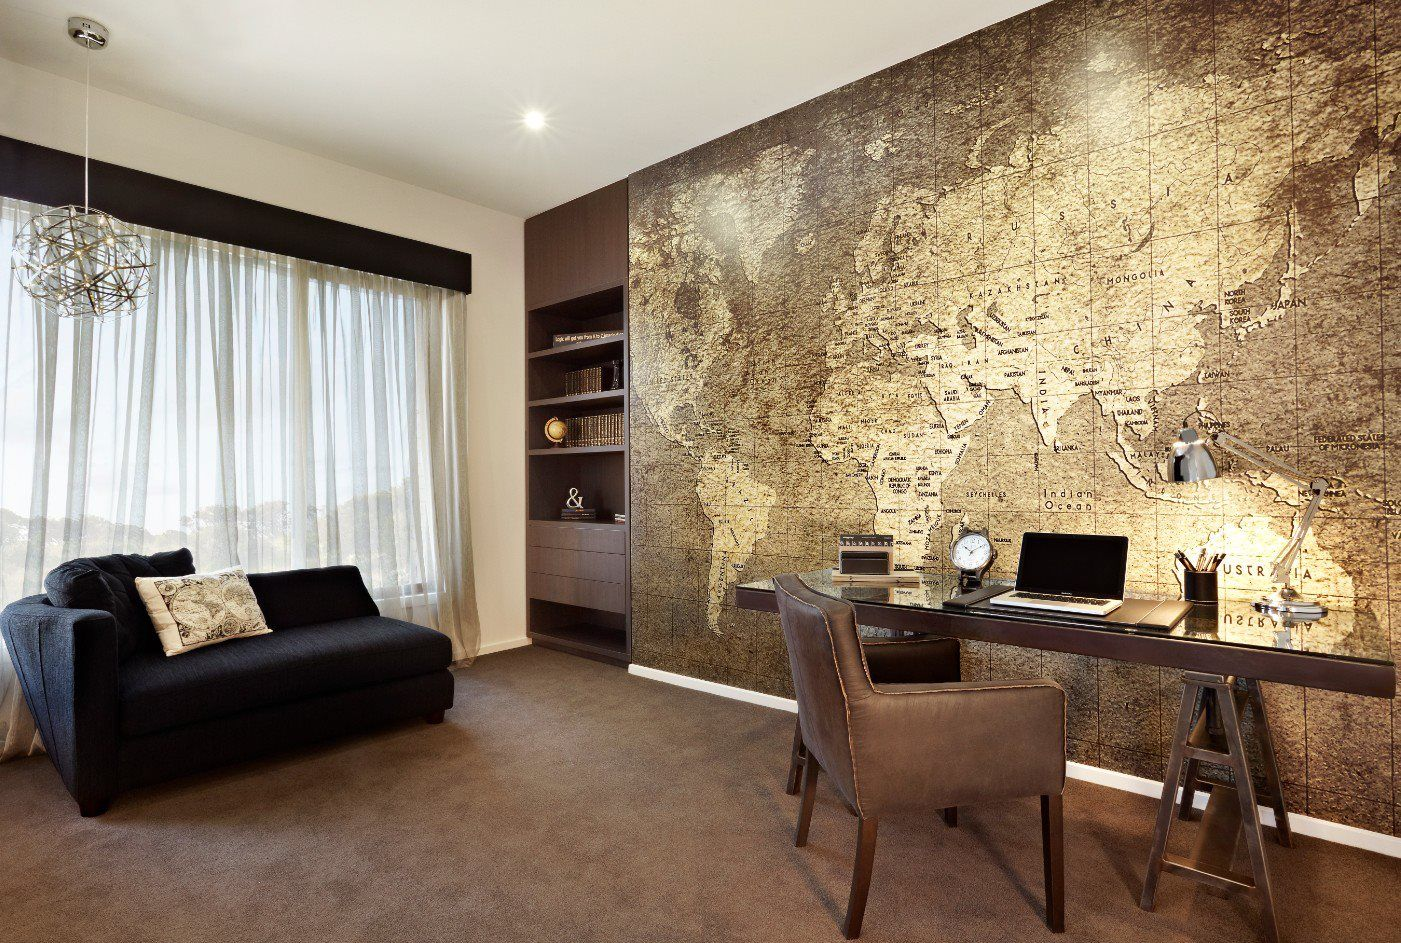 Best Ballarat Display Jg King Homes Love The World Map 400 x 300